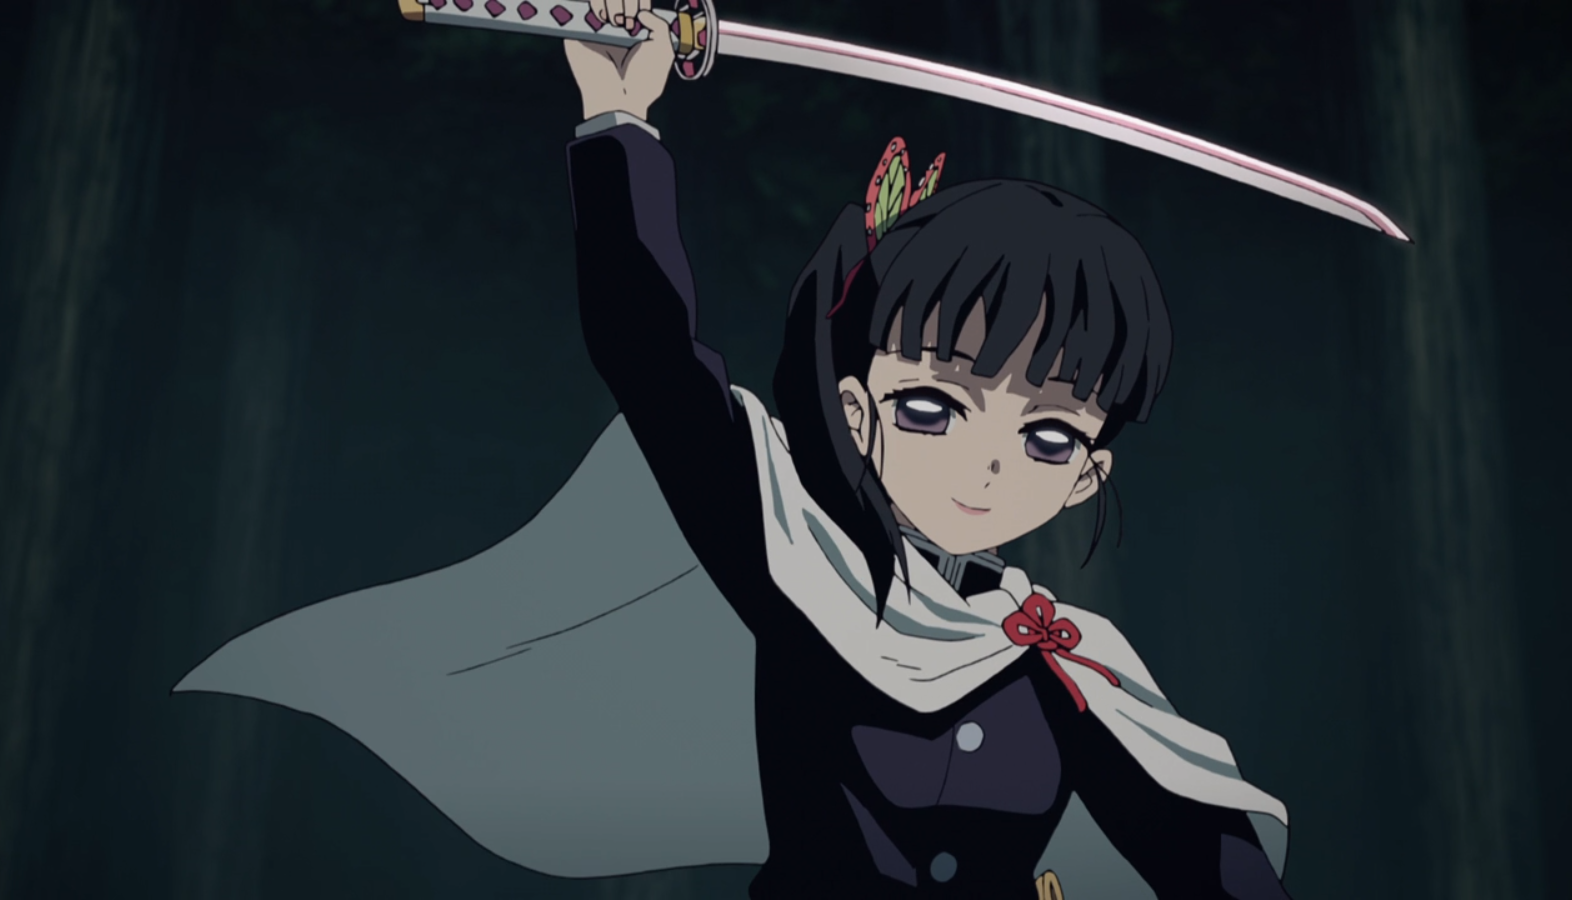 Review of Demon Slayer Kimetsu no Yaiba Episode 21